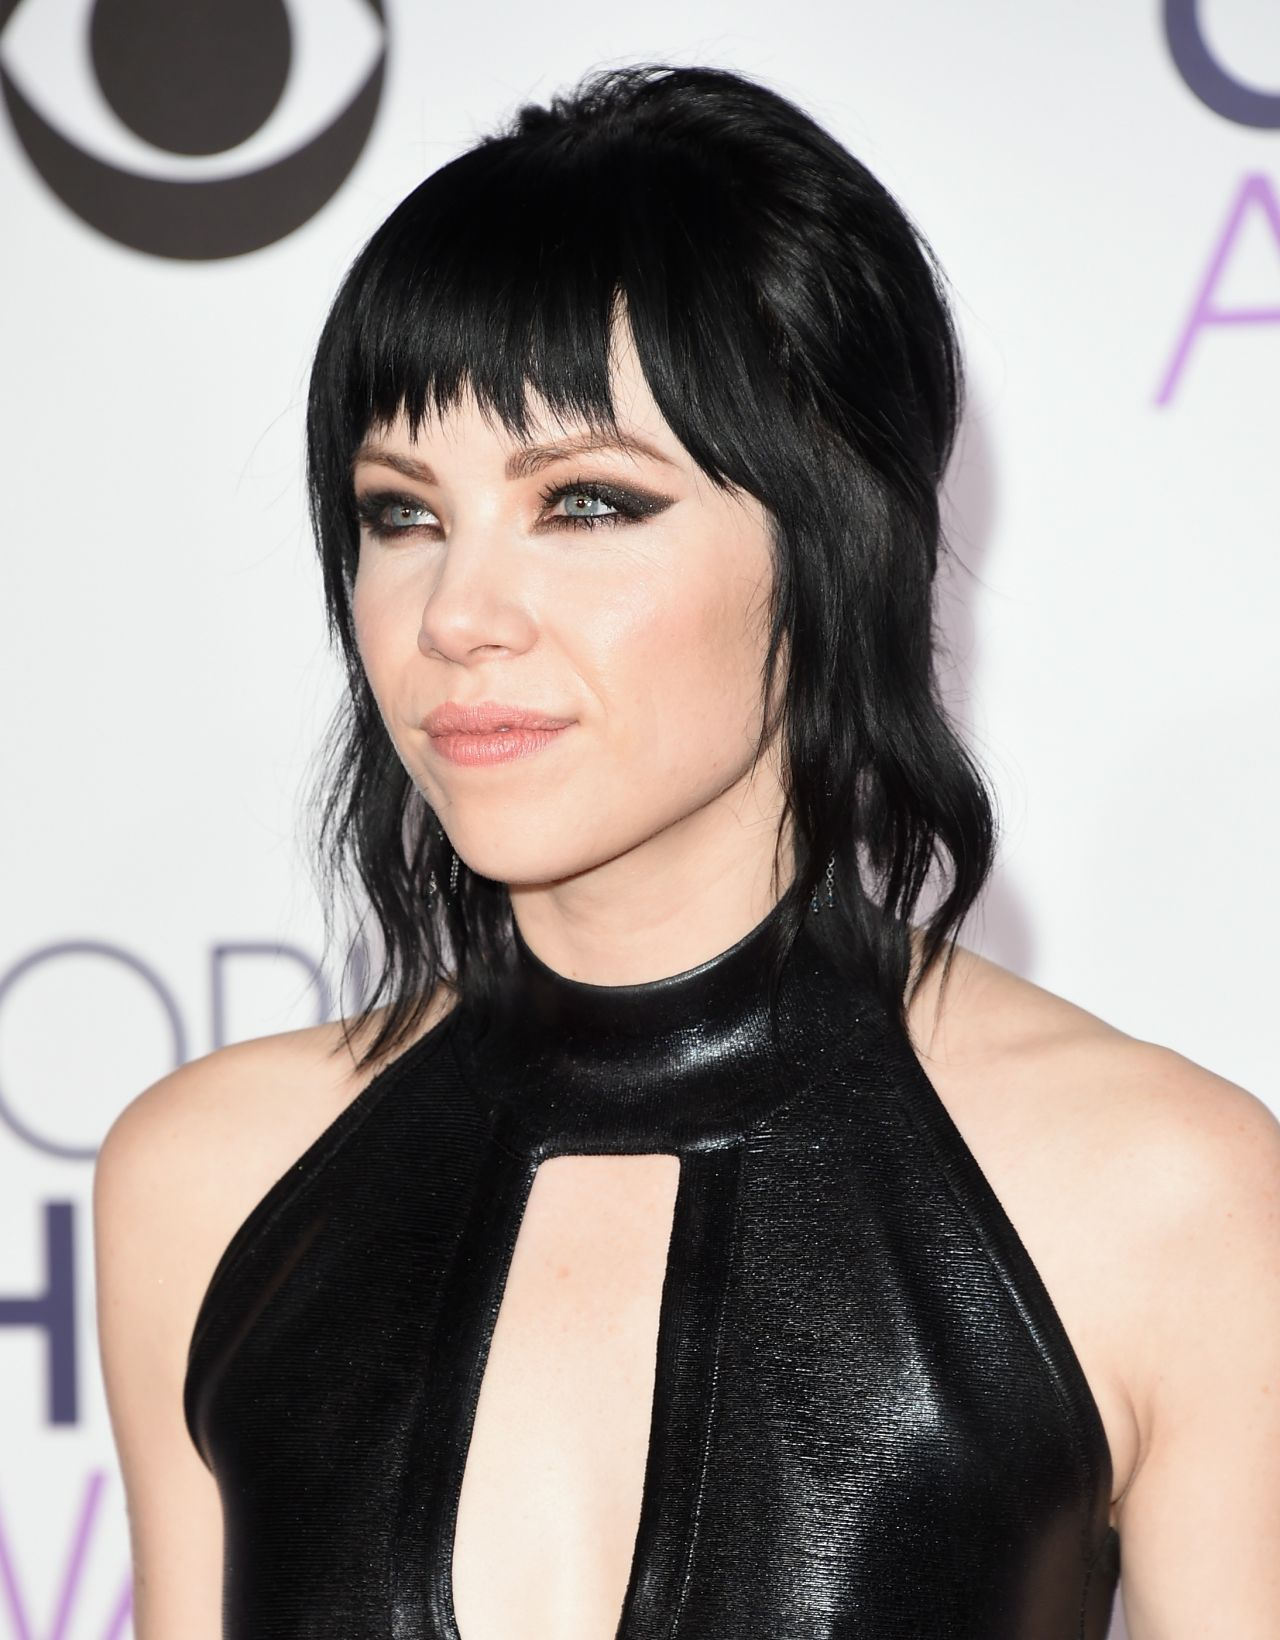 Excited Carly rae jepsen